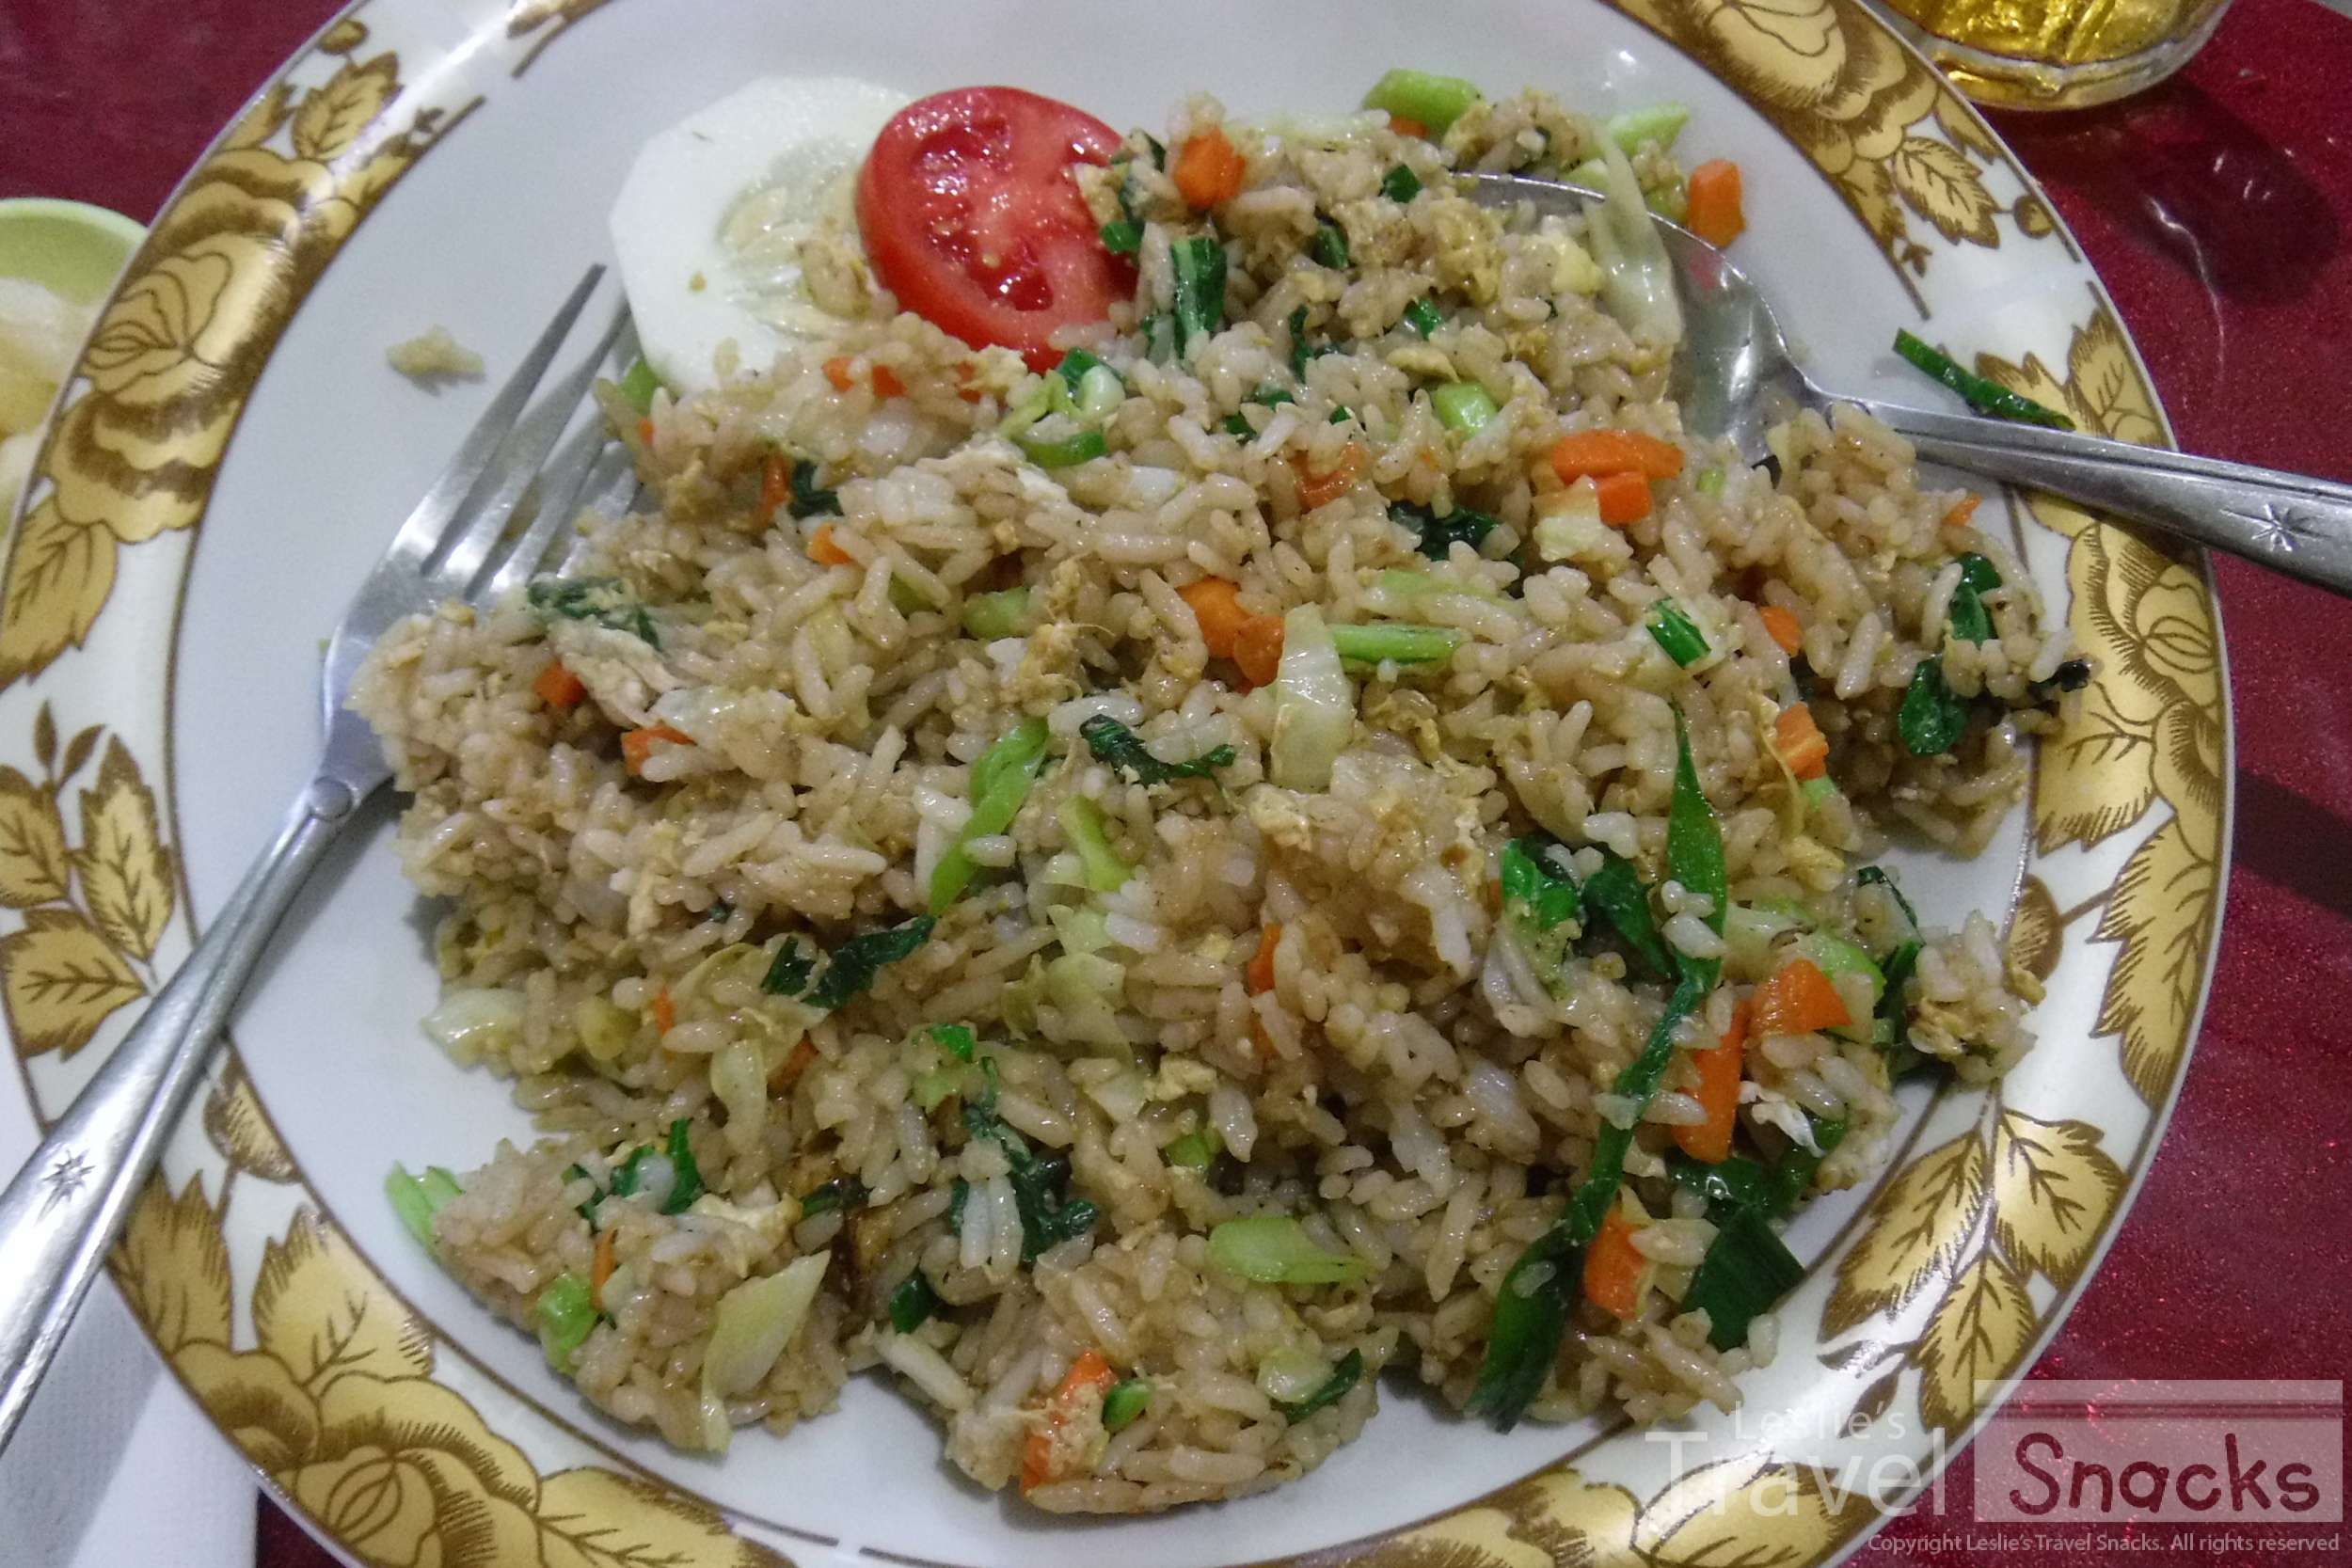 Vegetarian nasi goreng, a typical meal in Indonesia